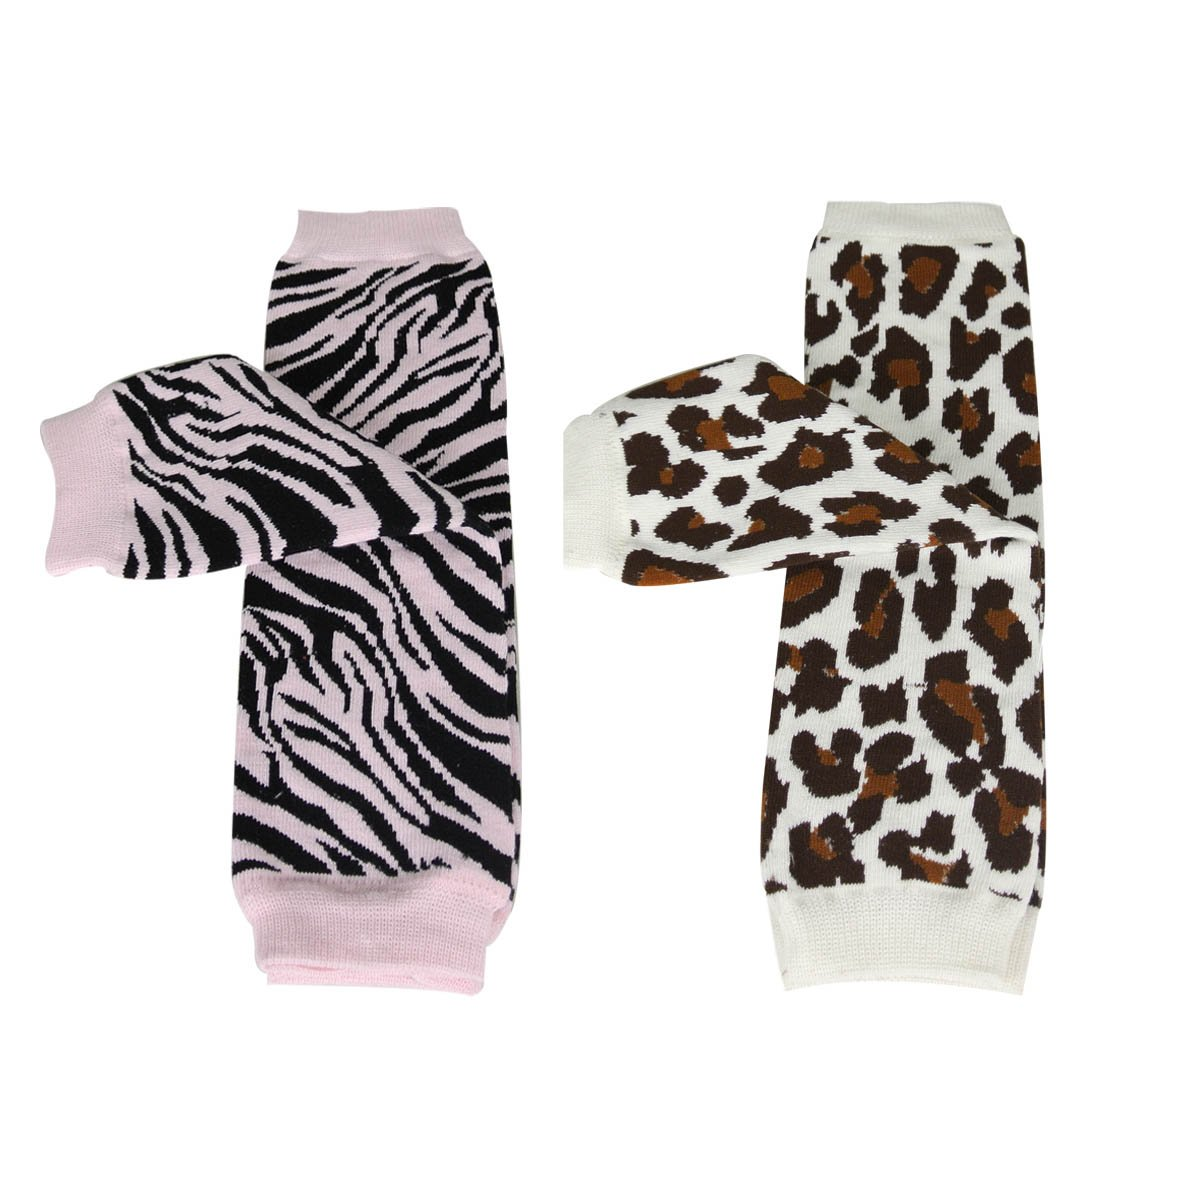 【在庫僅少】 Wrapables SOCKSHOSIERY ベビーボーイズ ベビーガールズ Safari ユニセックスベビー Safari Girl Wrapables Girl B00AZQAIL0, CHRONOHEARTS&COCORESALE:a4eec949 --- arianechie.dominiotemporario.com